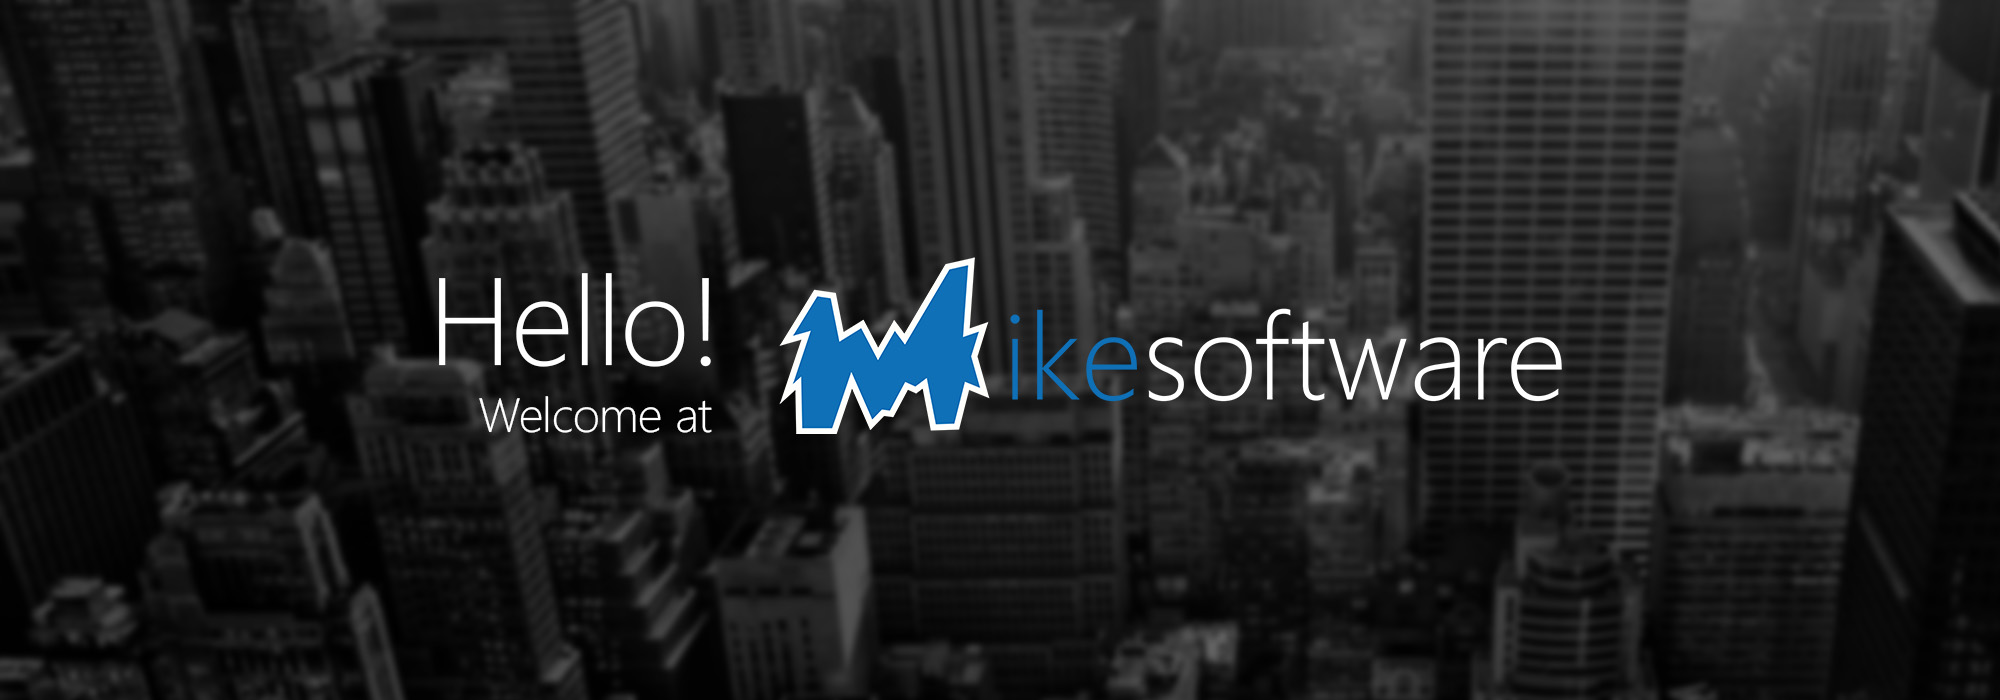 Hello! Welcome to Mikesoftware